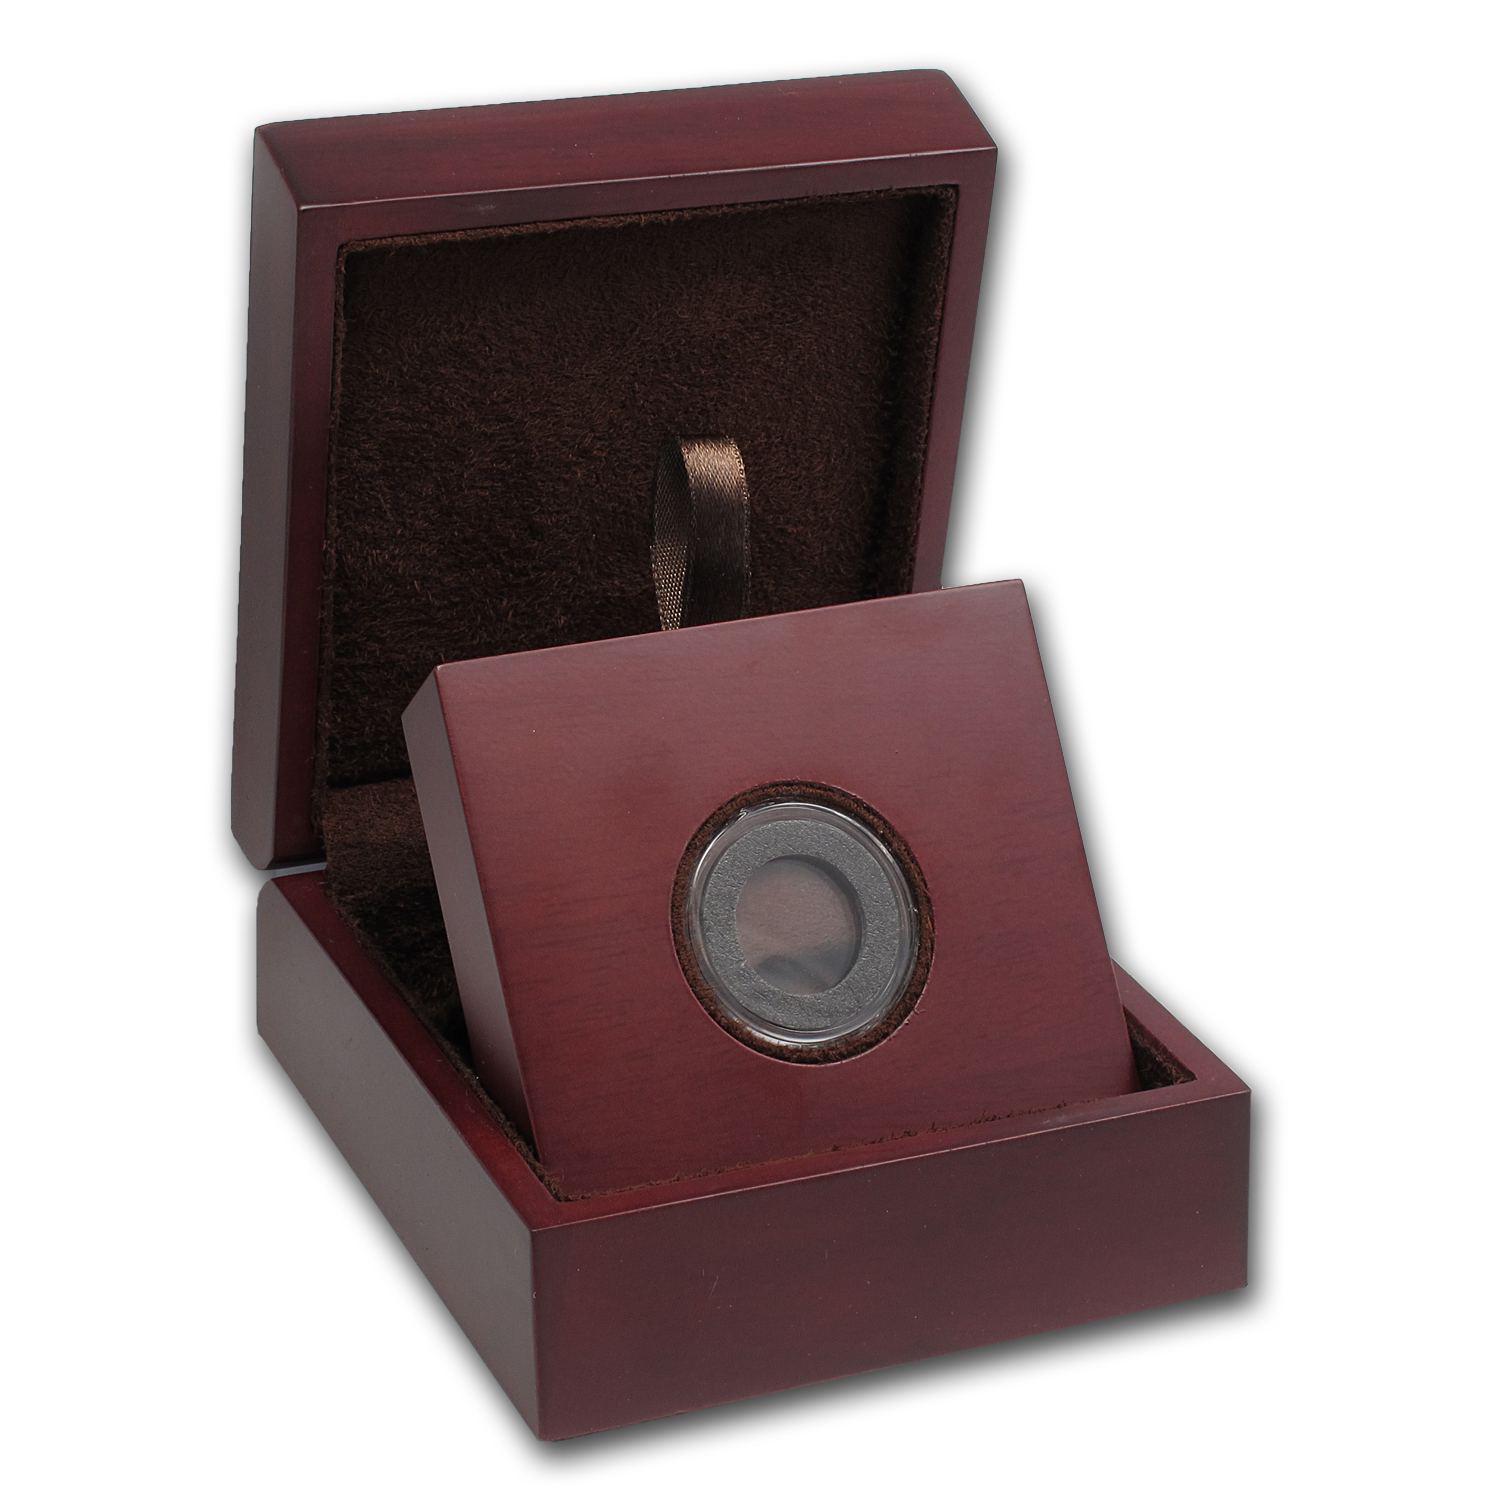 APMEX Wood Gift Box - Includes 17 mm Air-Tite Holder with Gasket